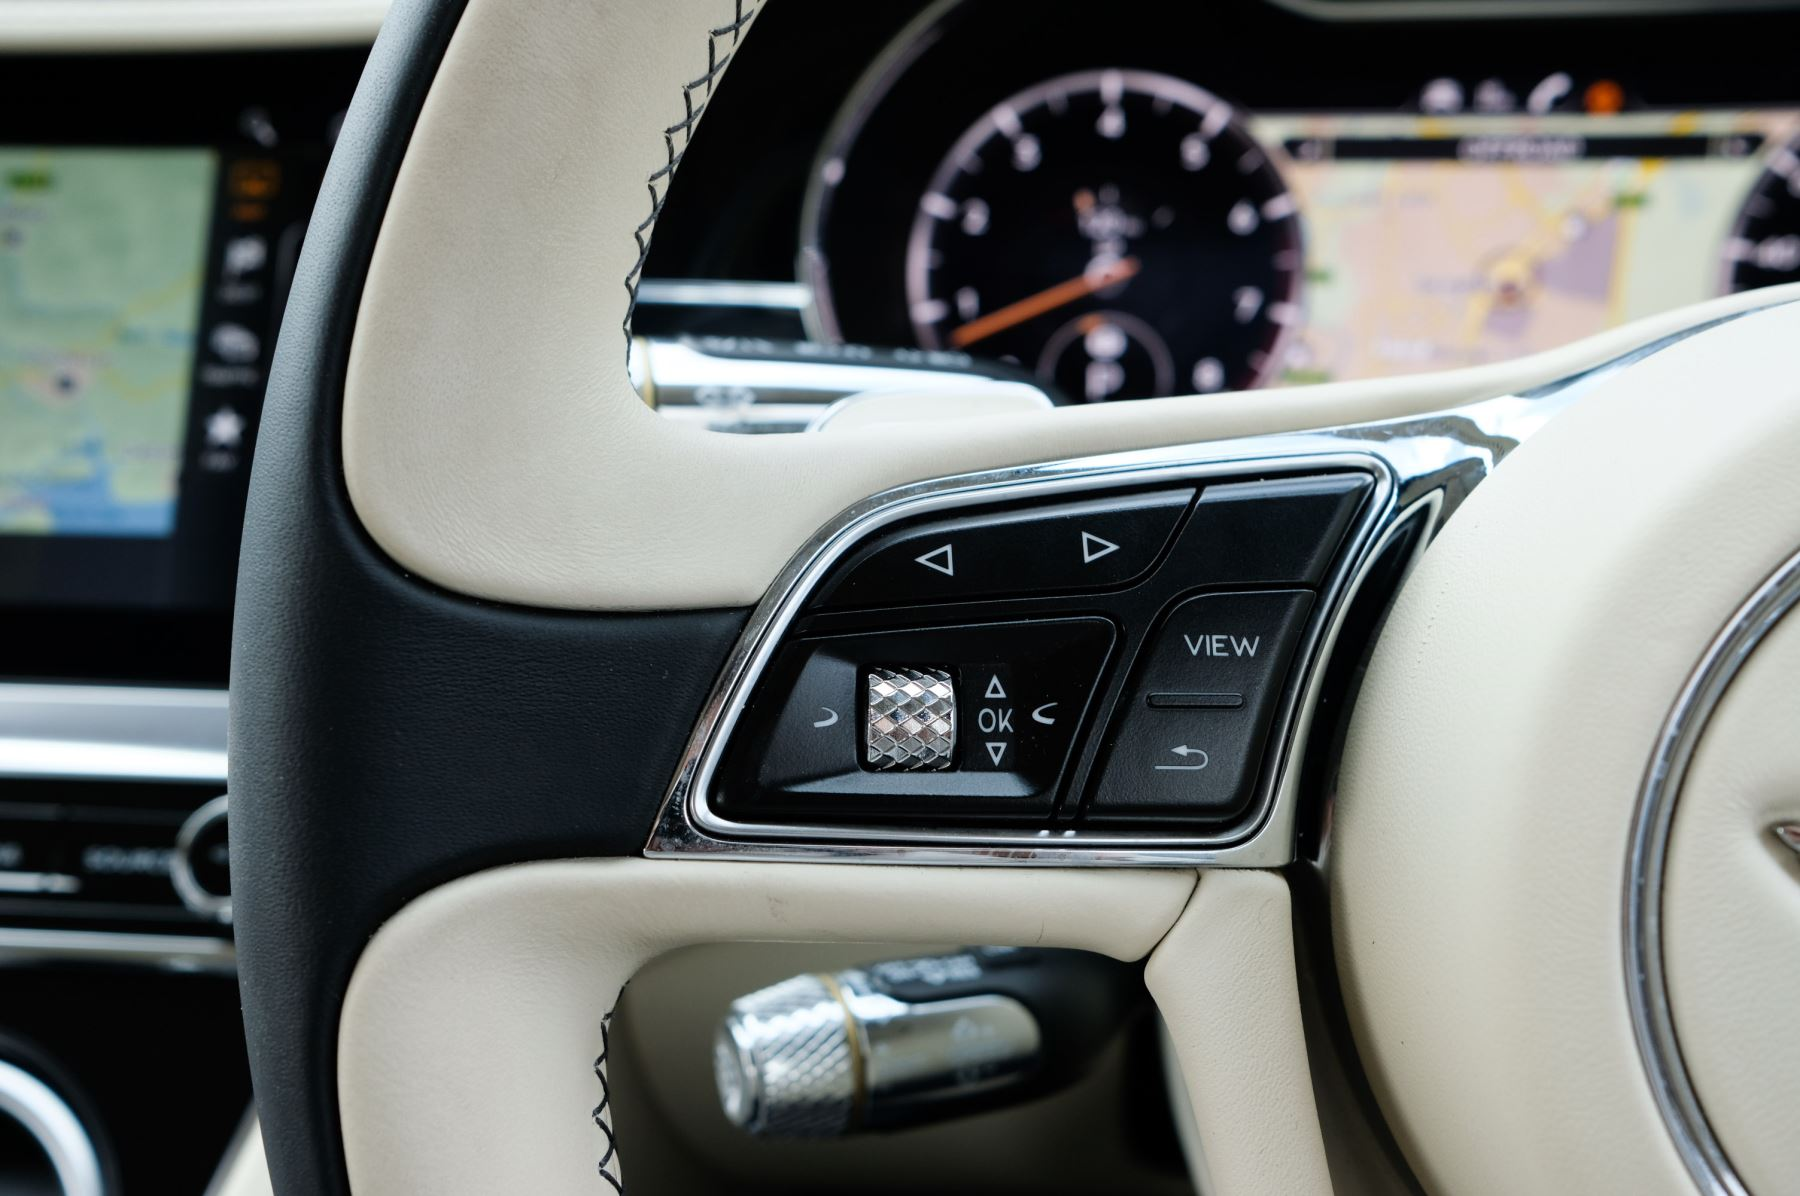 Bentley Continental GT 6.0 W12 1st Edition - Comfort Seating - Touring Specification image 25